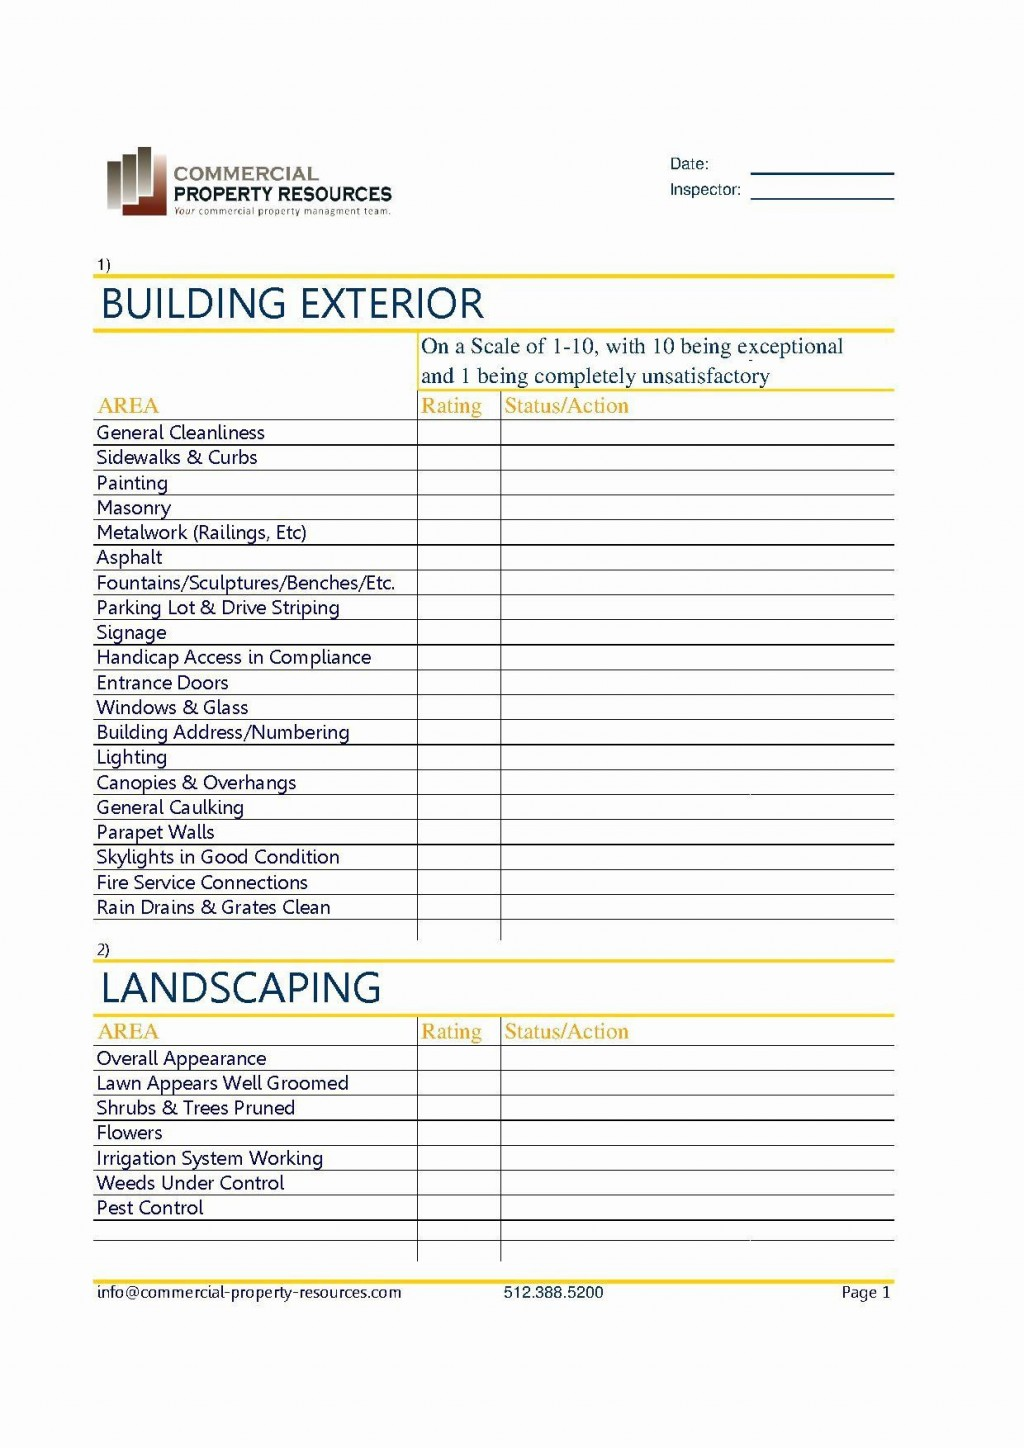 002 Magnificent Property Management Maintenance Checklist Template Image  FreeLarge